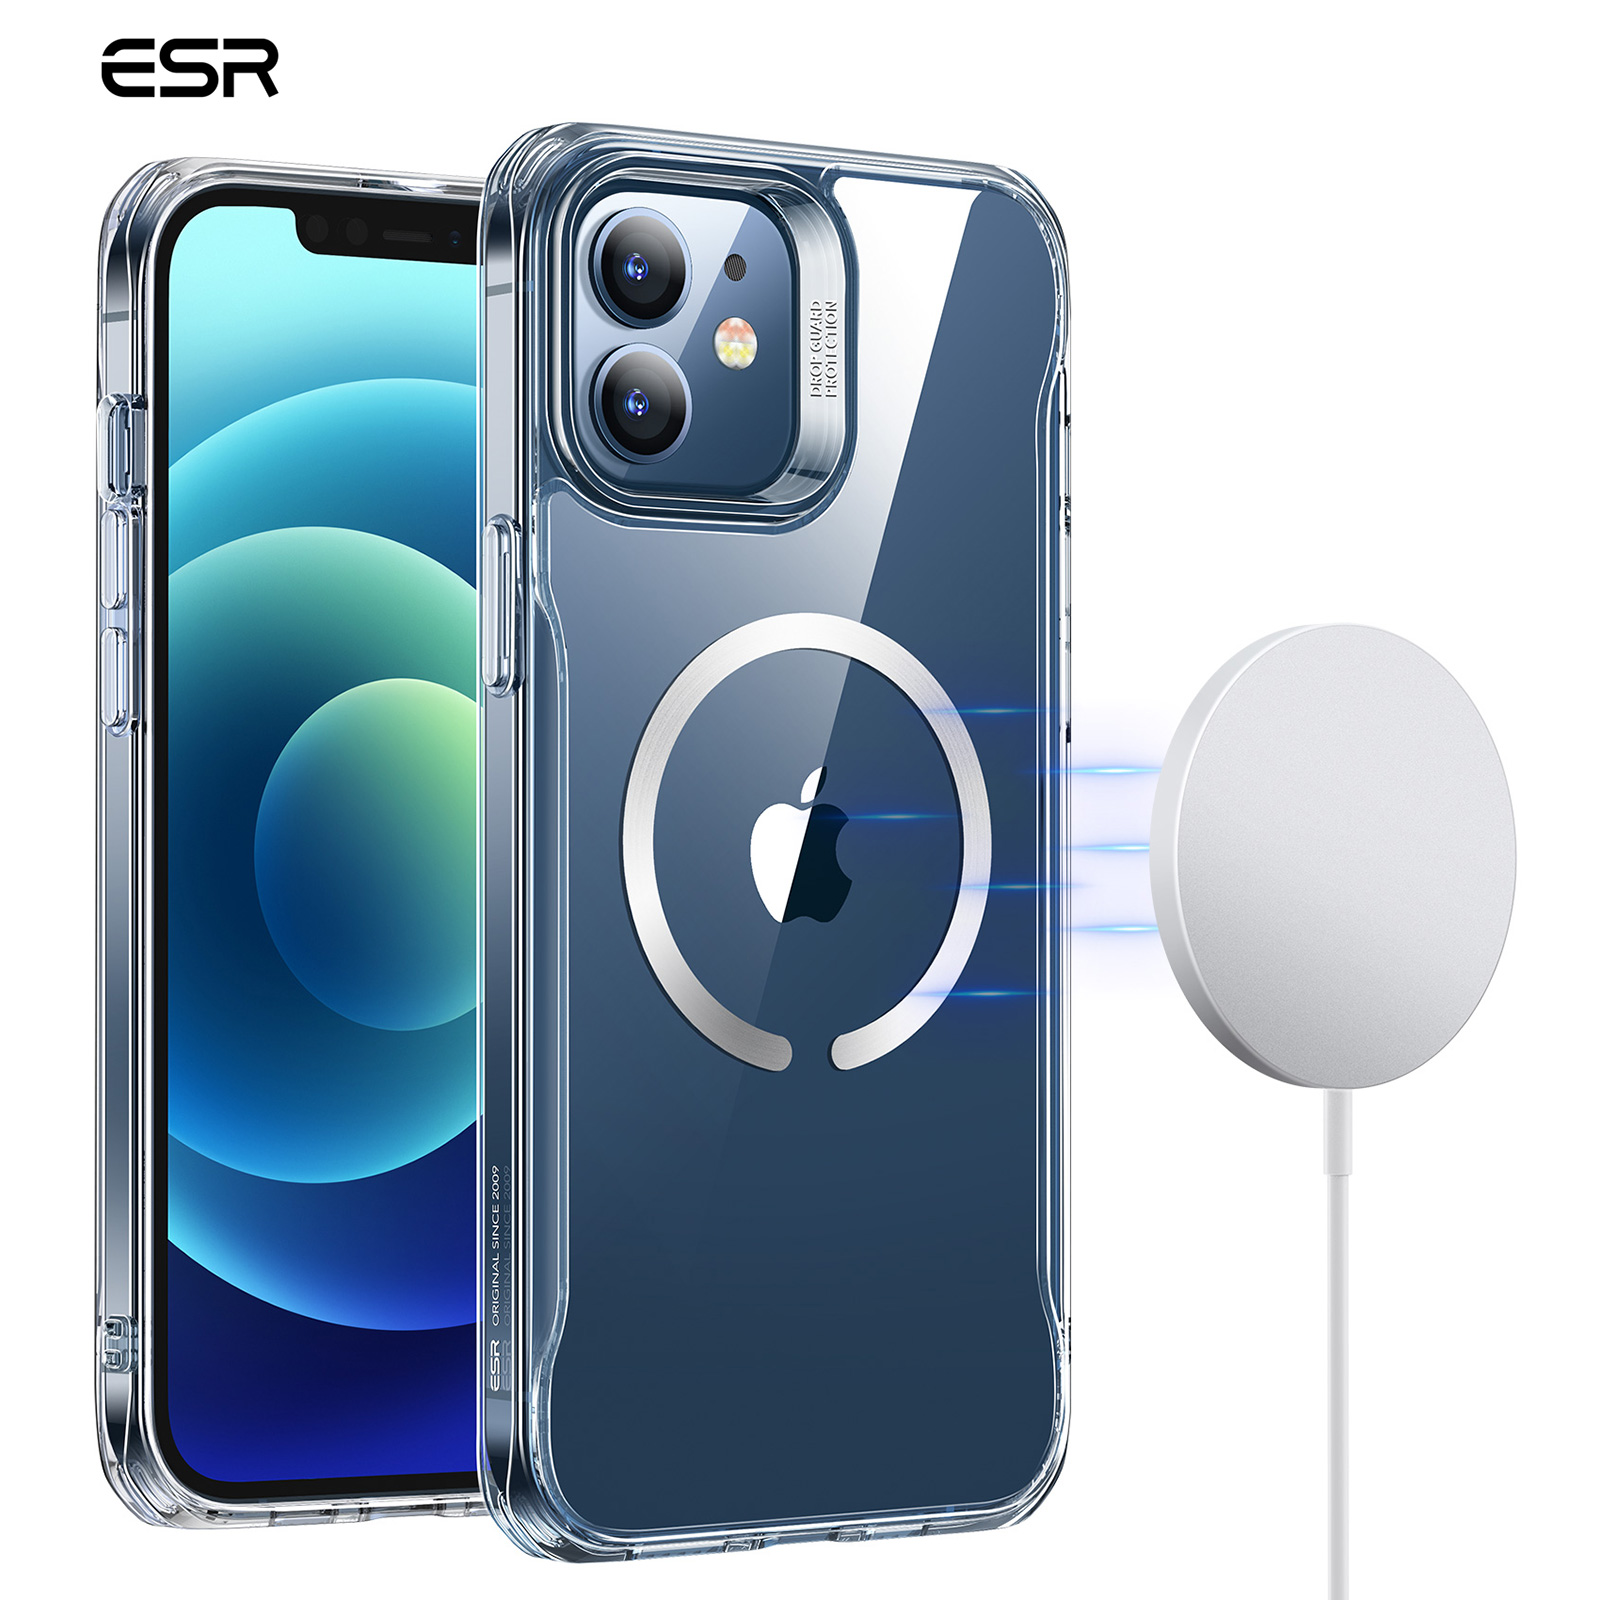 Unfortunately, this means that the magsafe charger is unable to charge iphone 12's when using a quad lock case. Esr Case Hybrid Magnetik Dengan Halolock Wireless Charging Untuk Iphone 12 12 Pro Max Shopee Indonesia